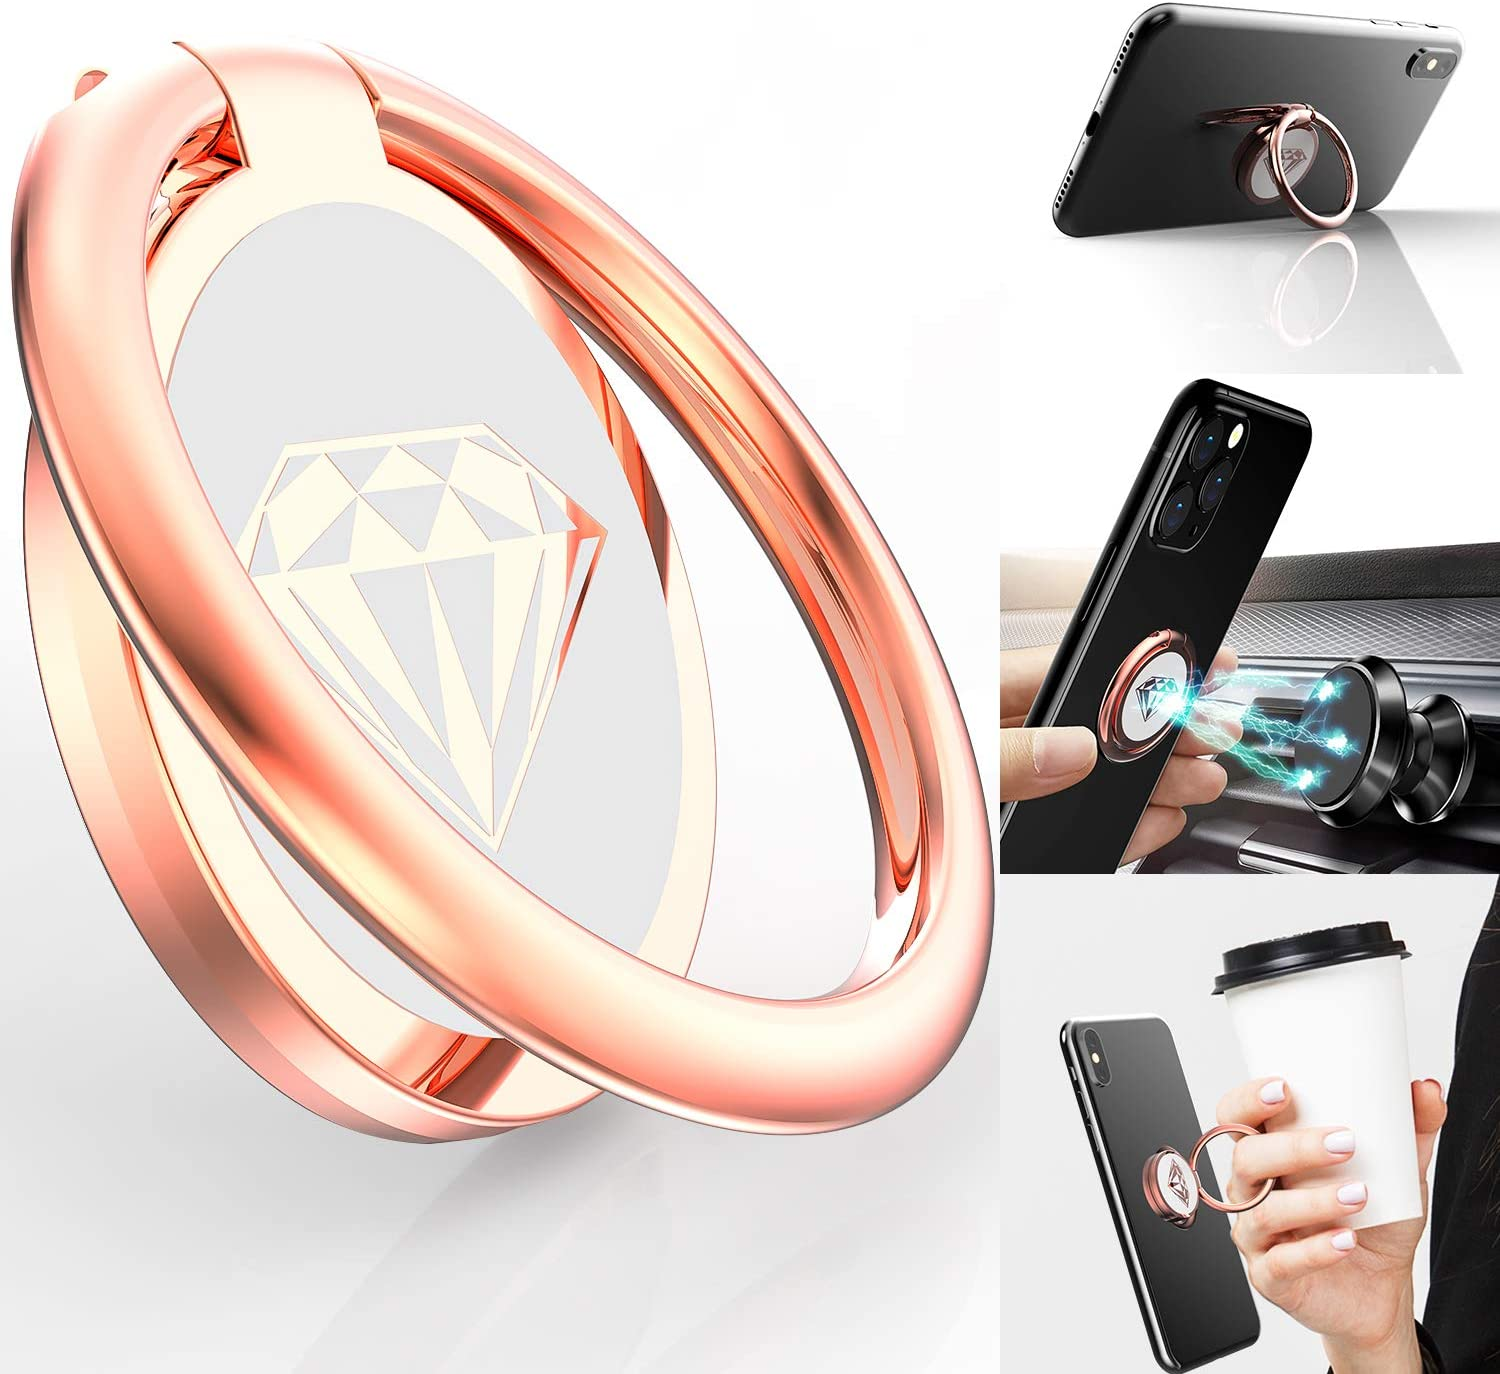 Phone Ring Holder Finger Kickstand, A-Maker 360° Rotation Metal Phone Ring Stand,Phone Ring Grip for Magnetic Car Mount Compatible with iPhone, Samsung Galaxy All Smartphone (Rose Gold)